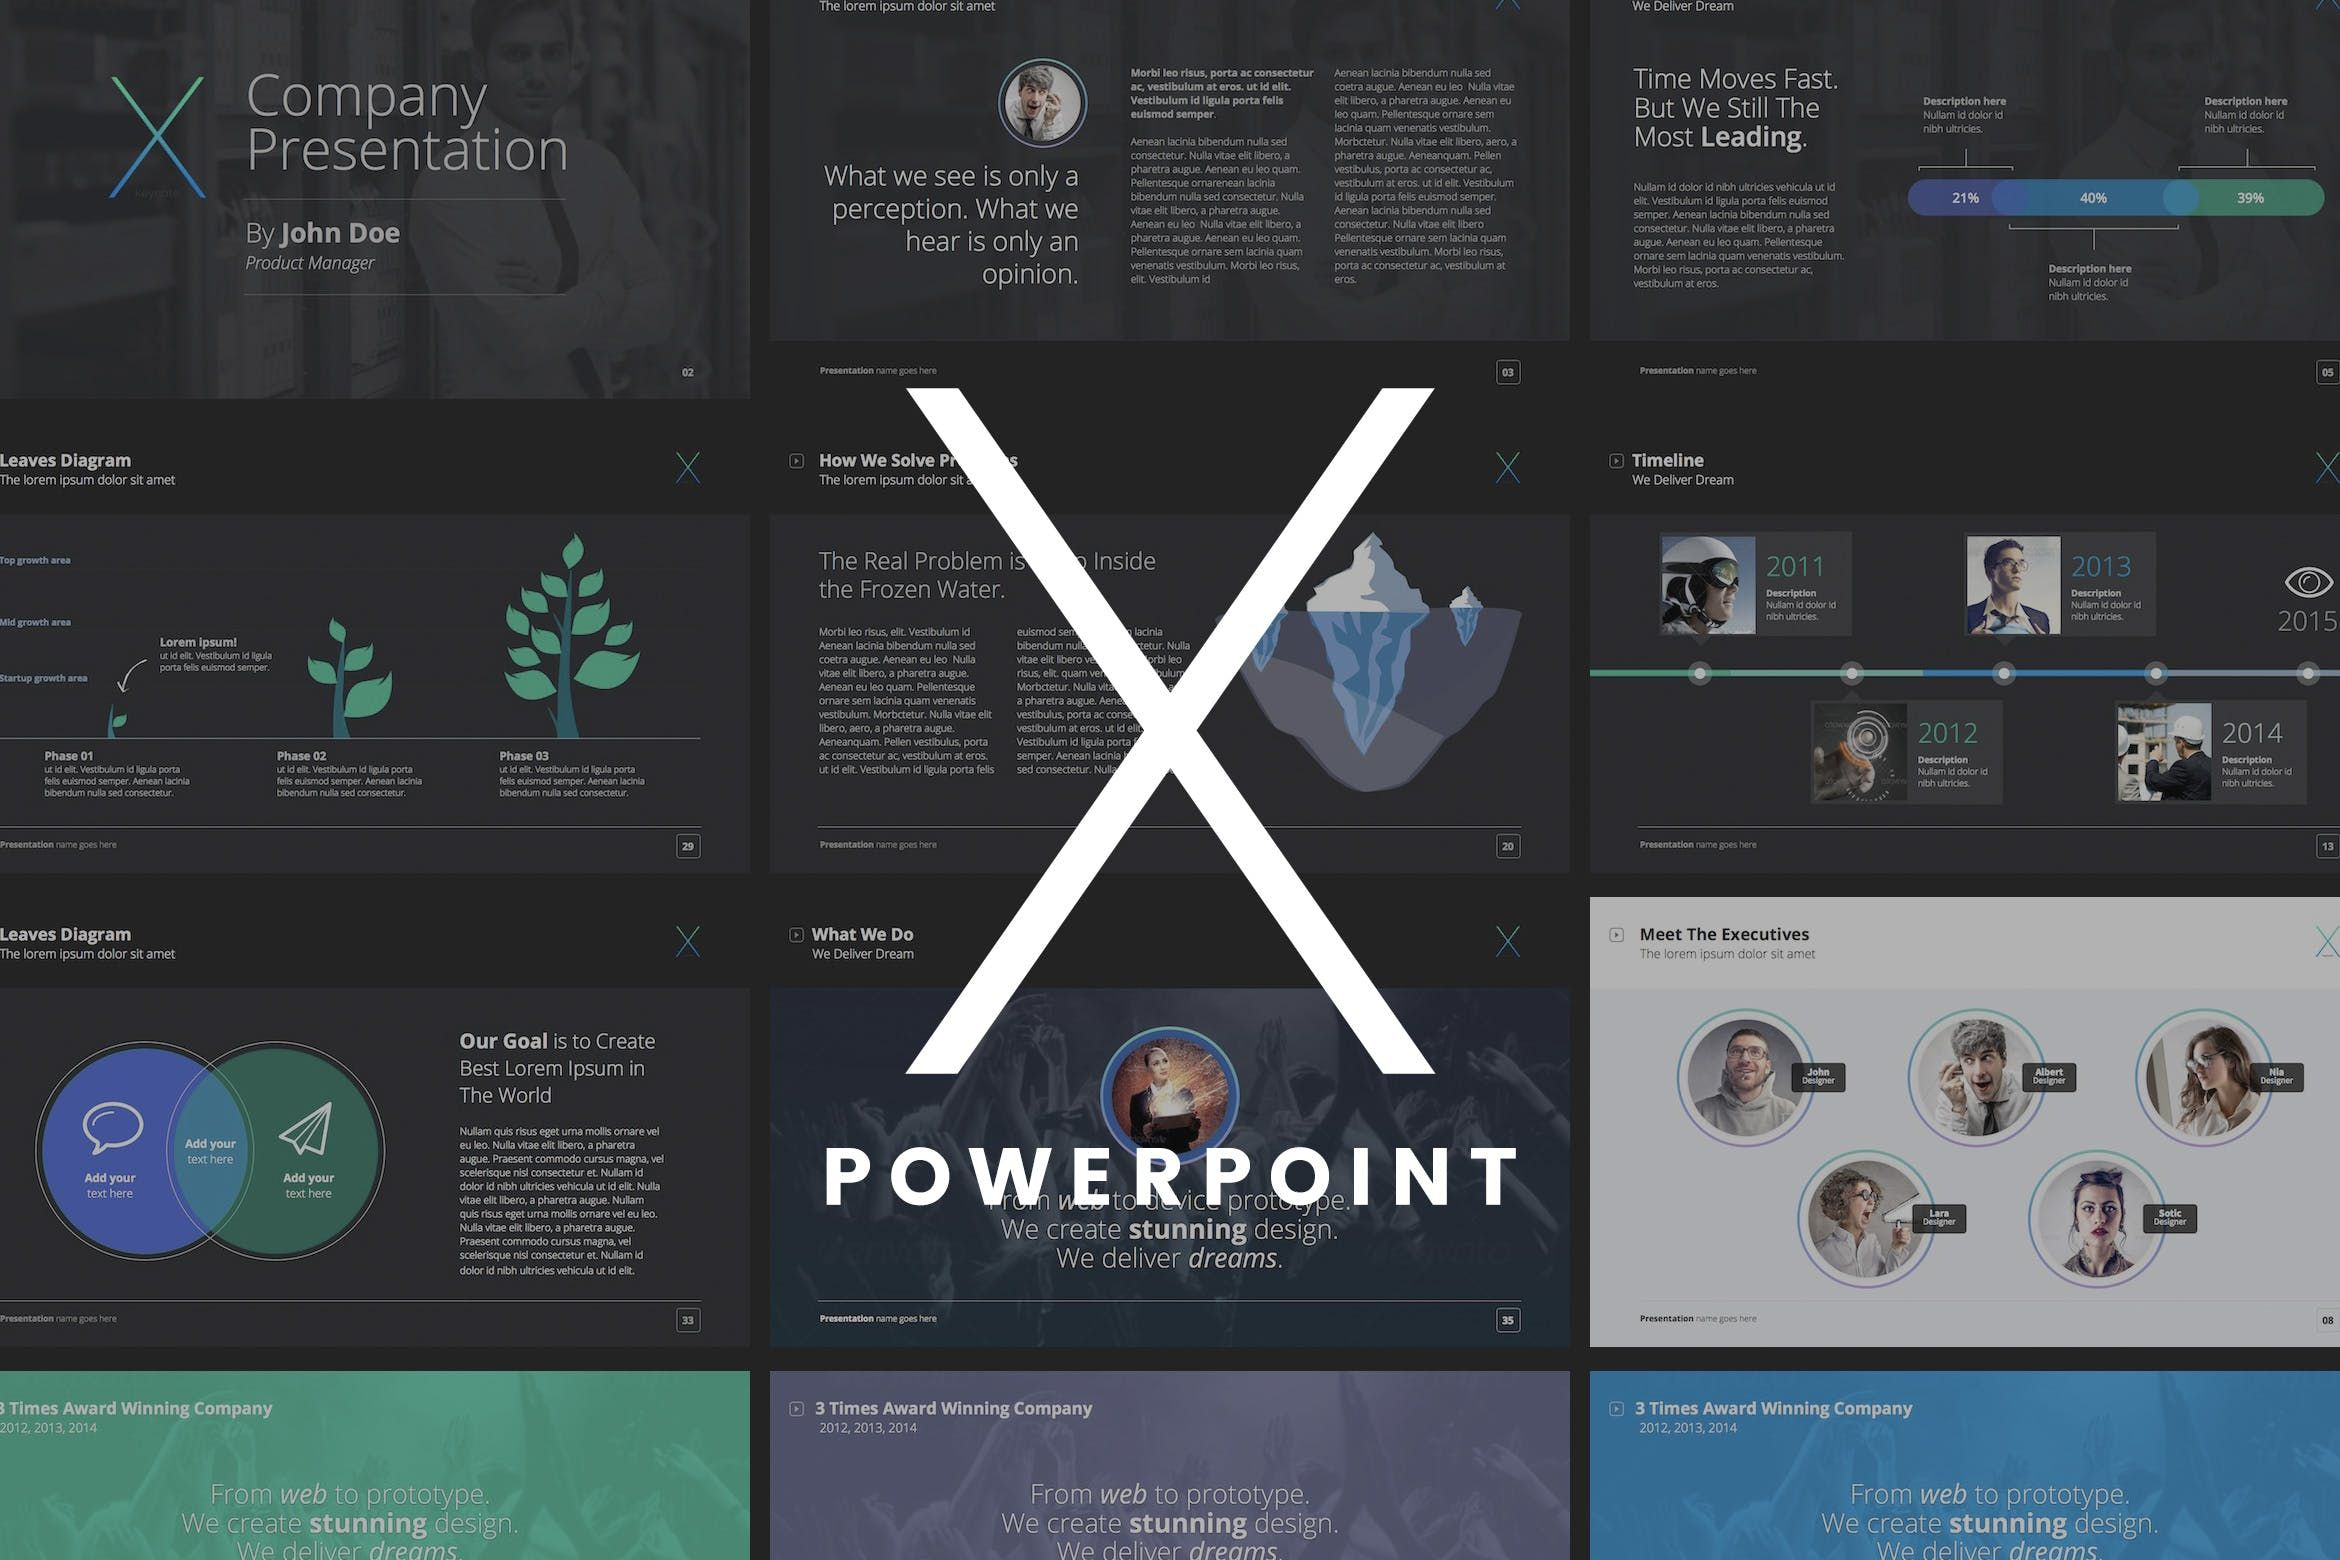 Download the x note powerpoint template presentation templates by download the x note powerpoint template presentation templates by slidehack subscribe to envato elements for unlimited presentation templates downloads toneelgroepblik Image collections